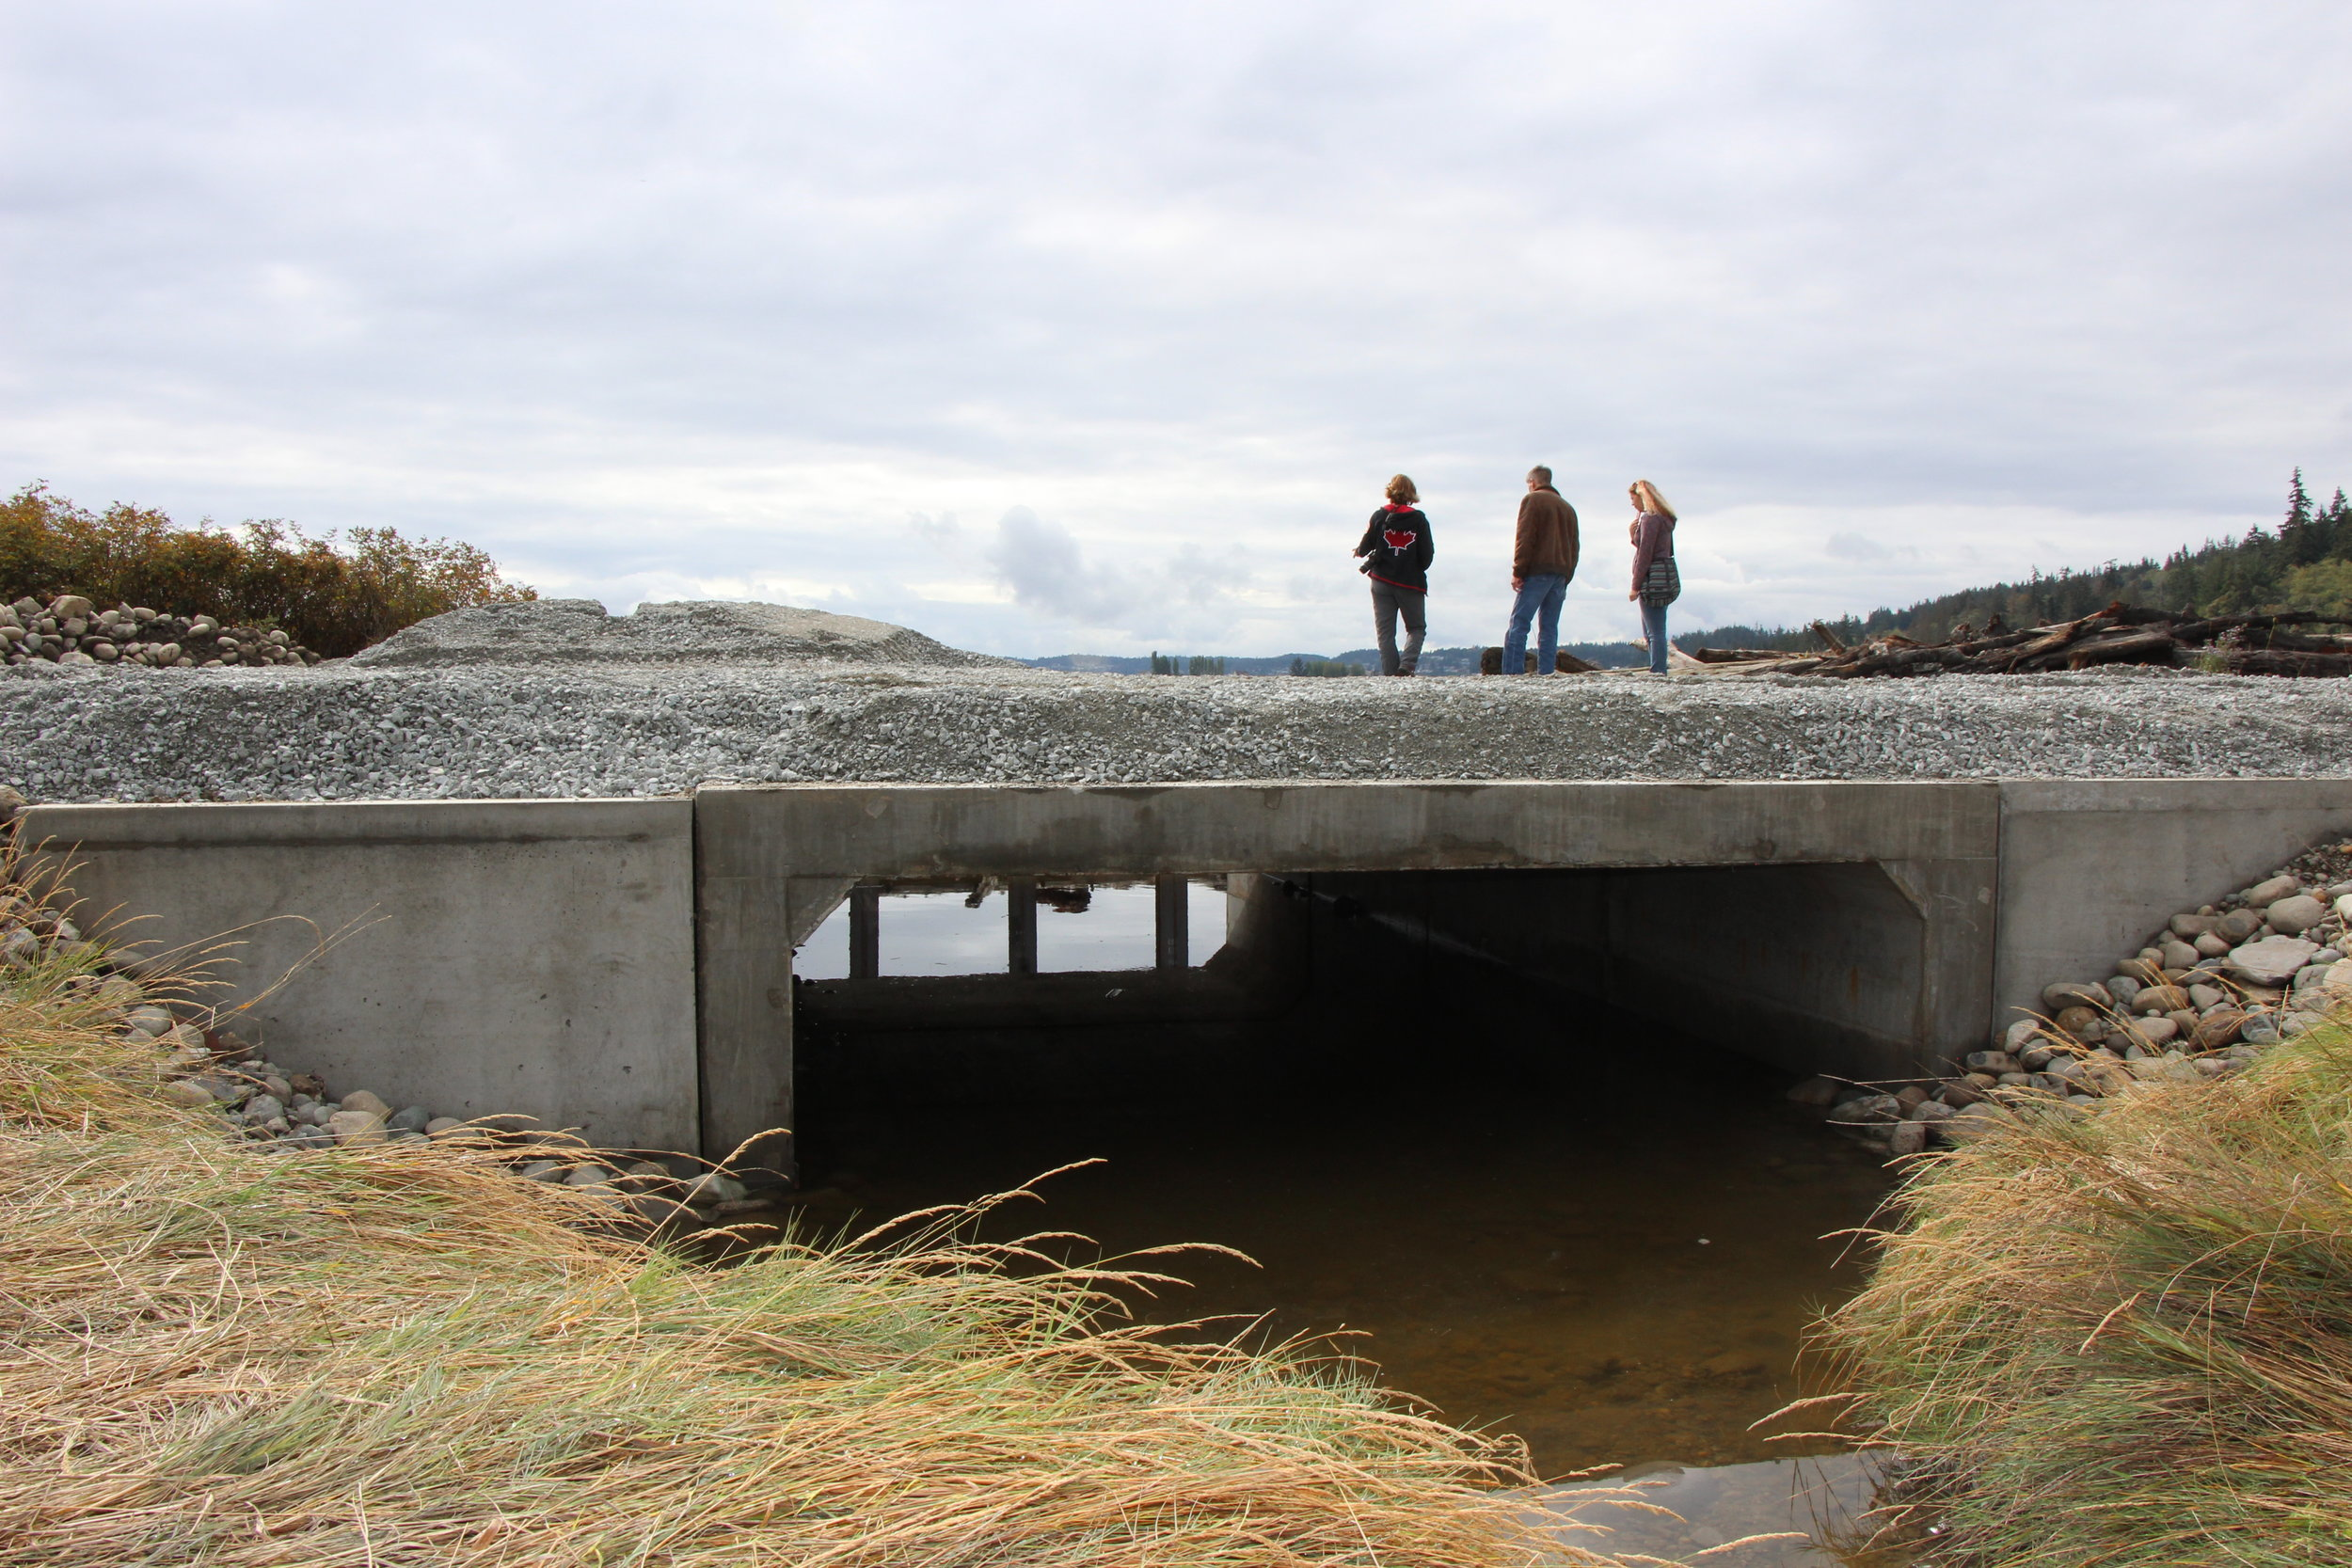 Dawn Pucci, Commissioner Rick Hannold, and Amber (Coupeville office) from Island County standing on the newly placed Barnum Road culvert.